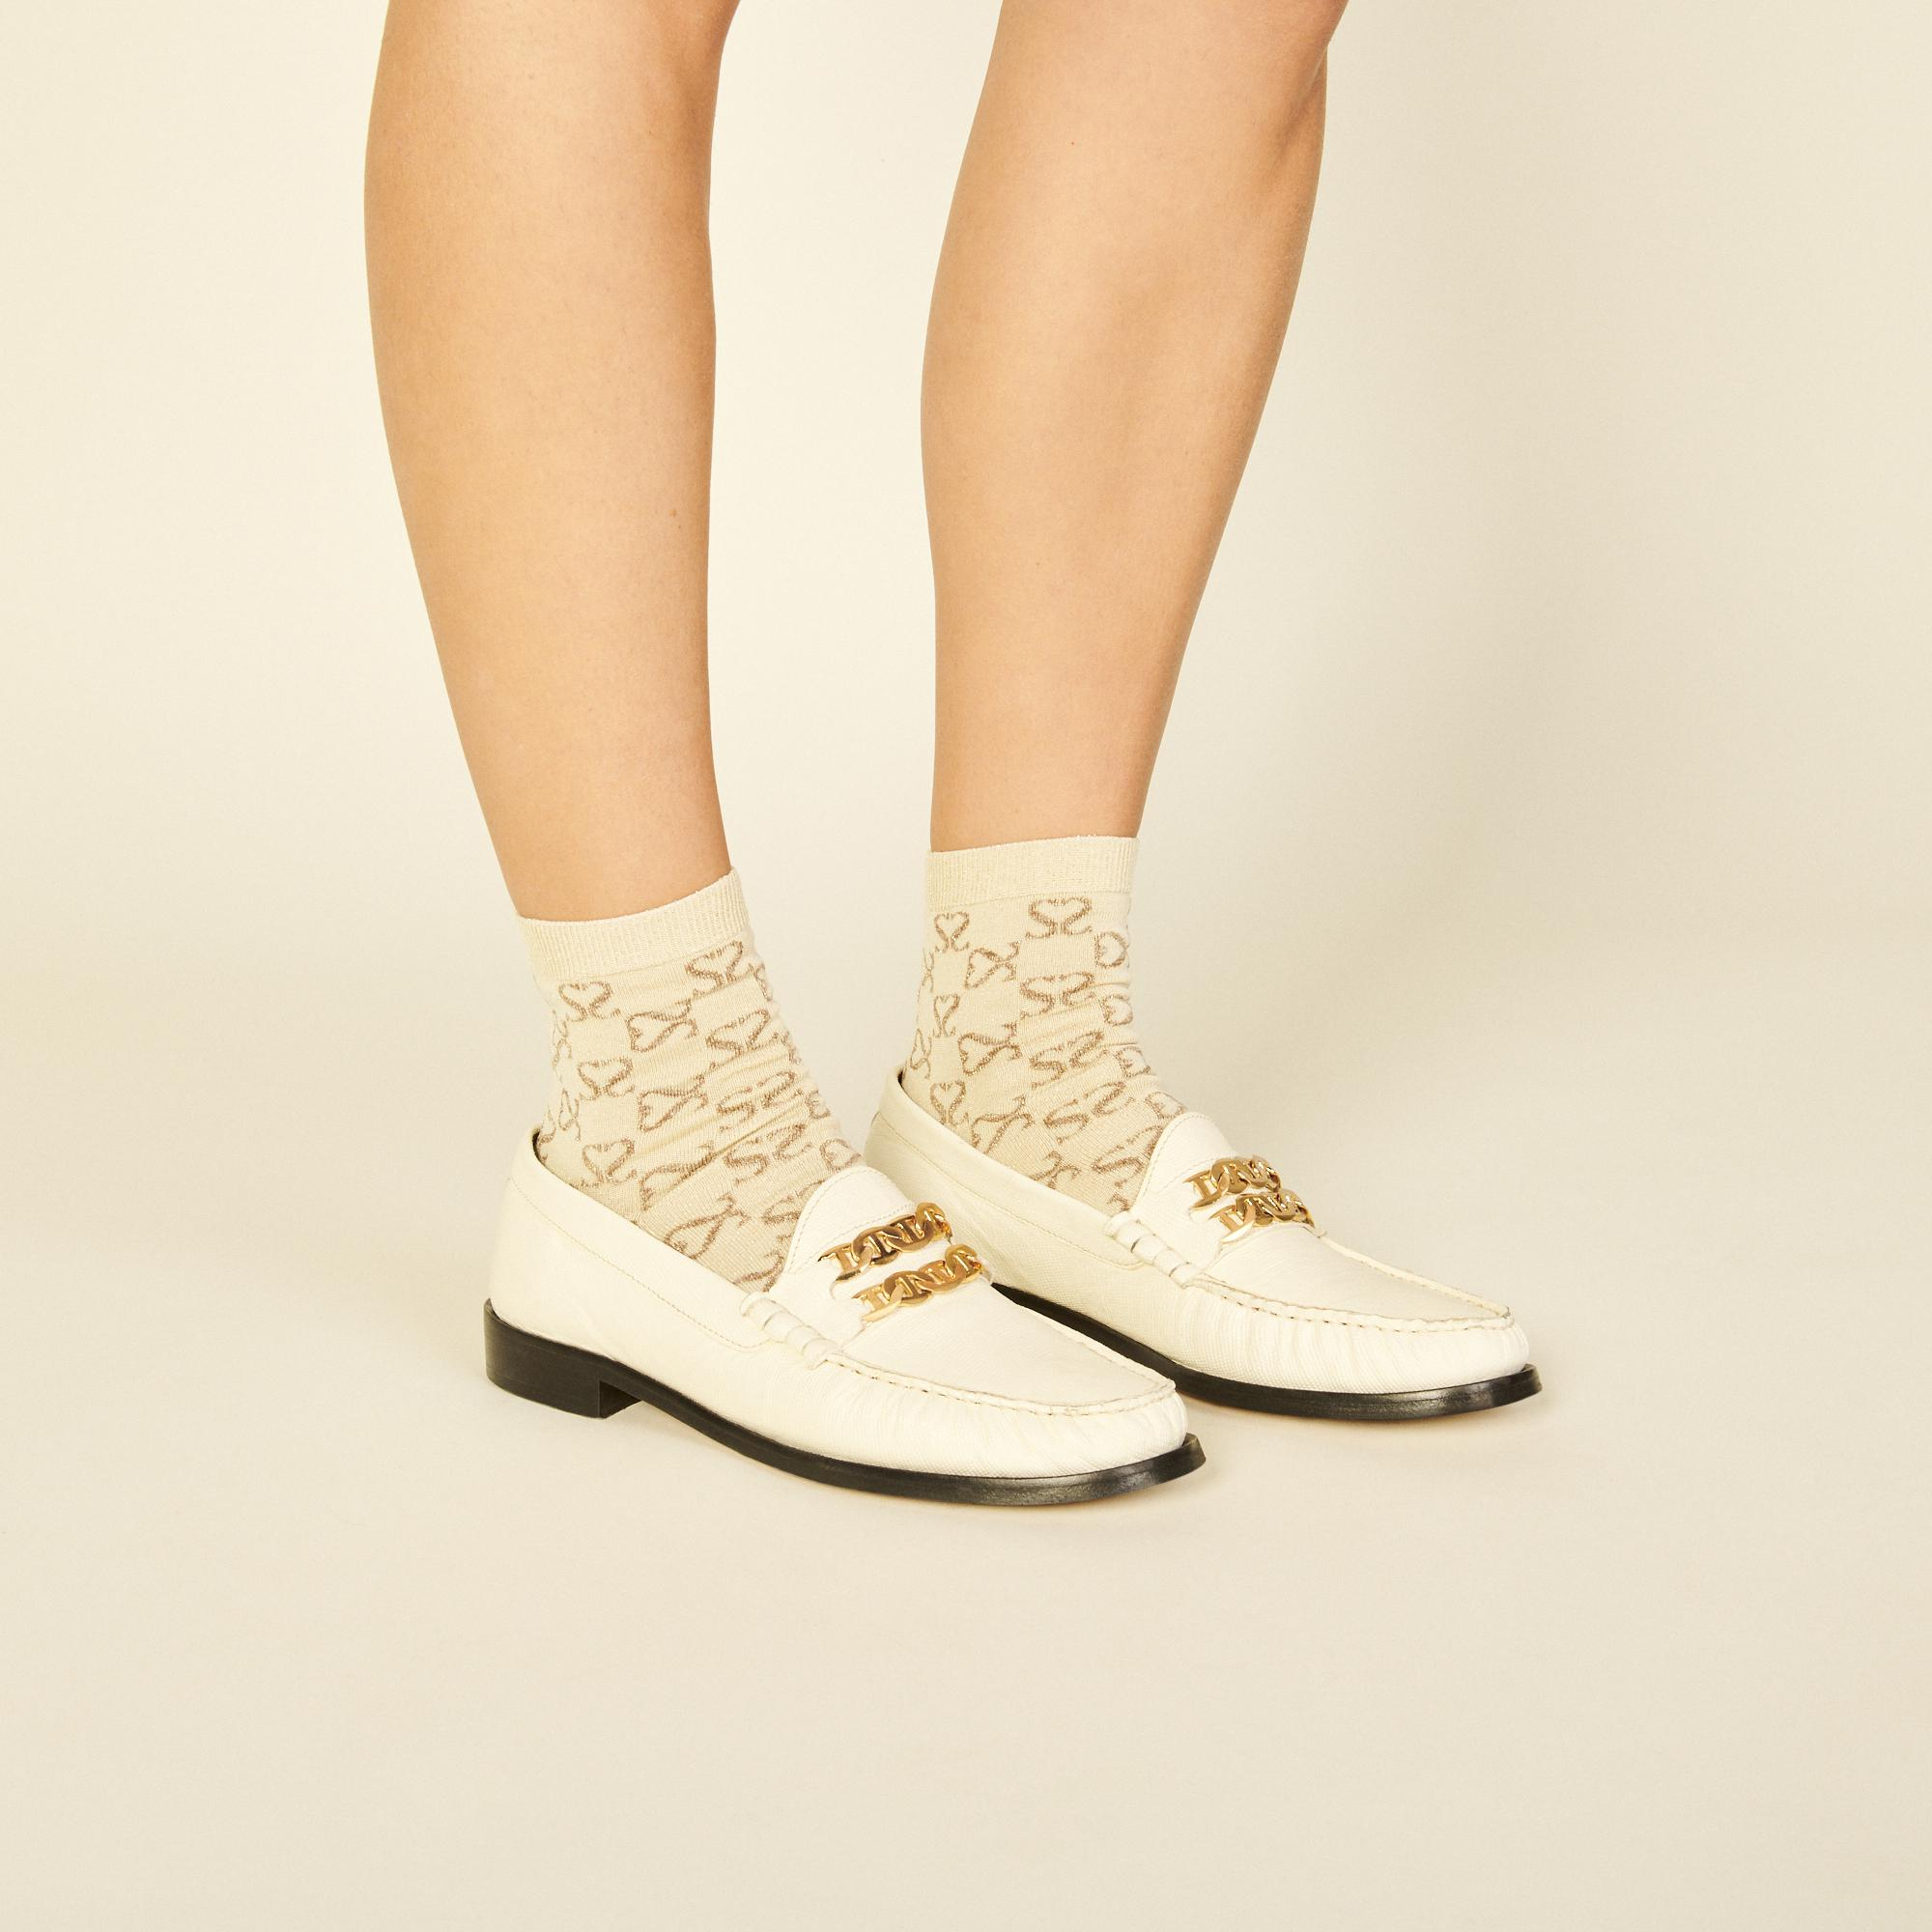 Jacquard socks with double S in lurex